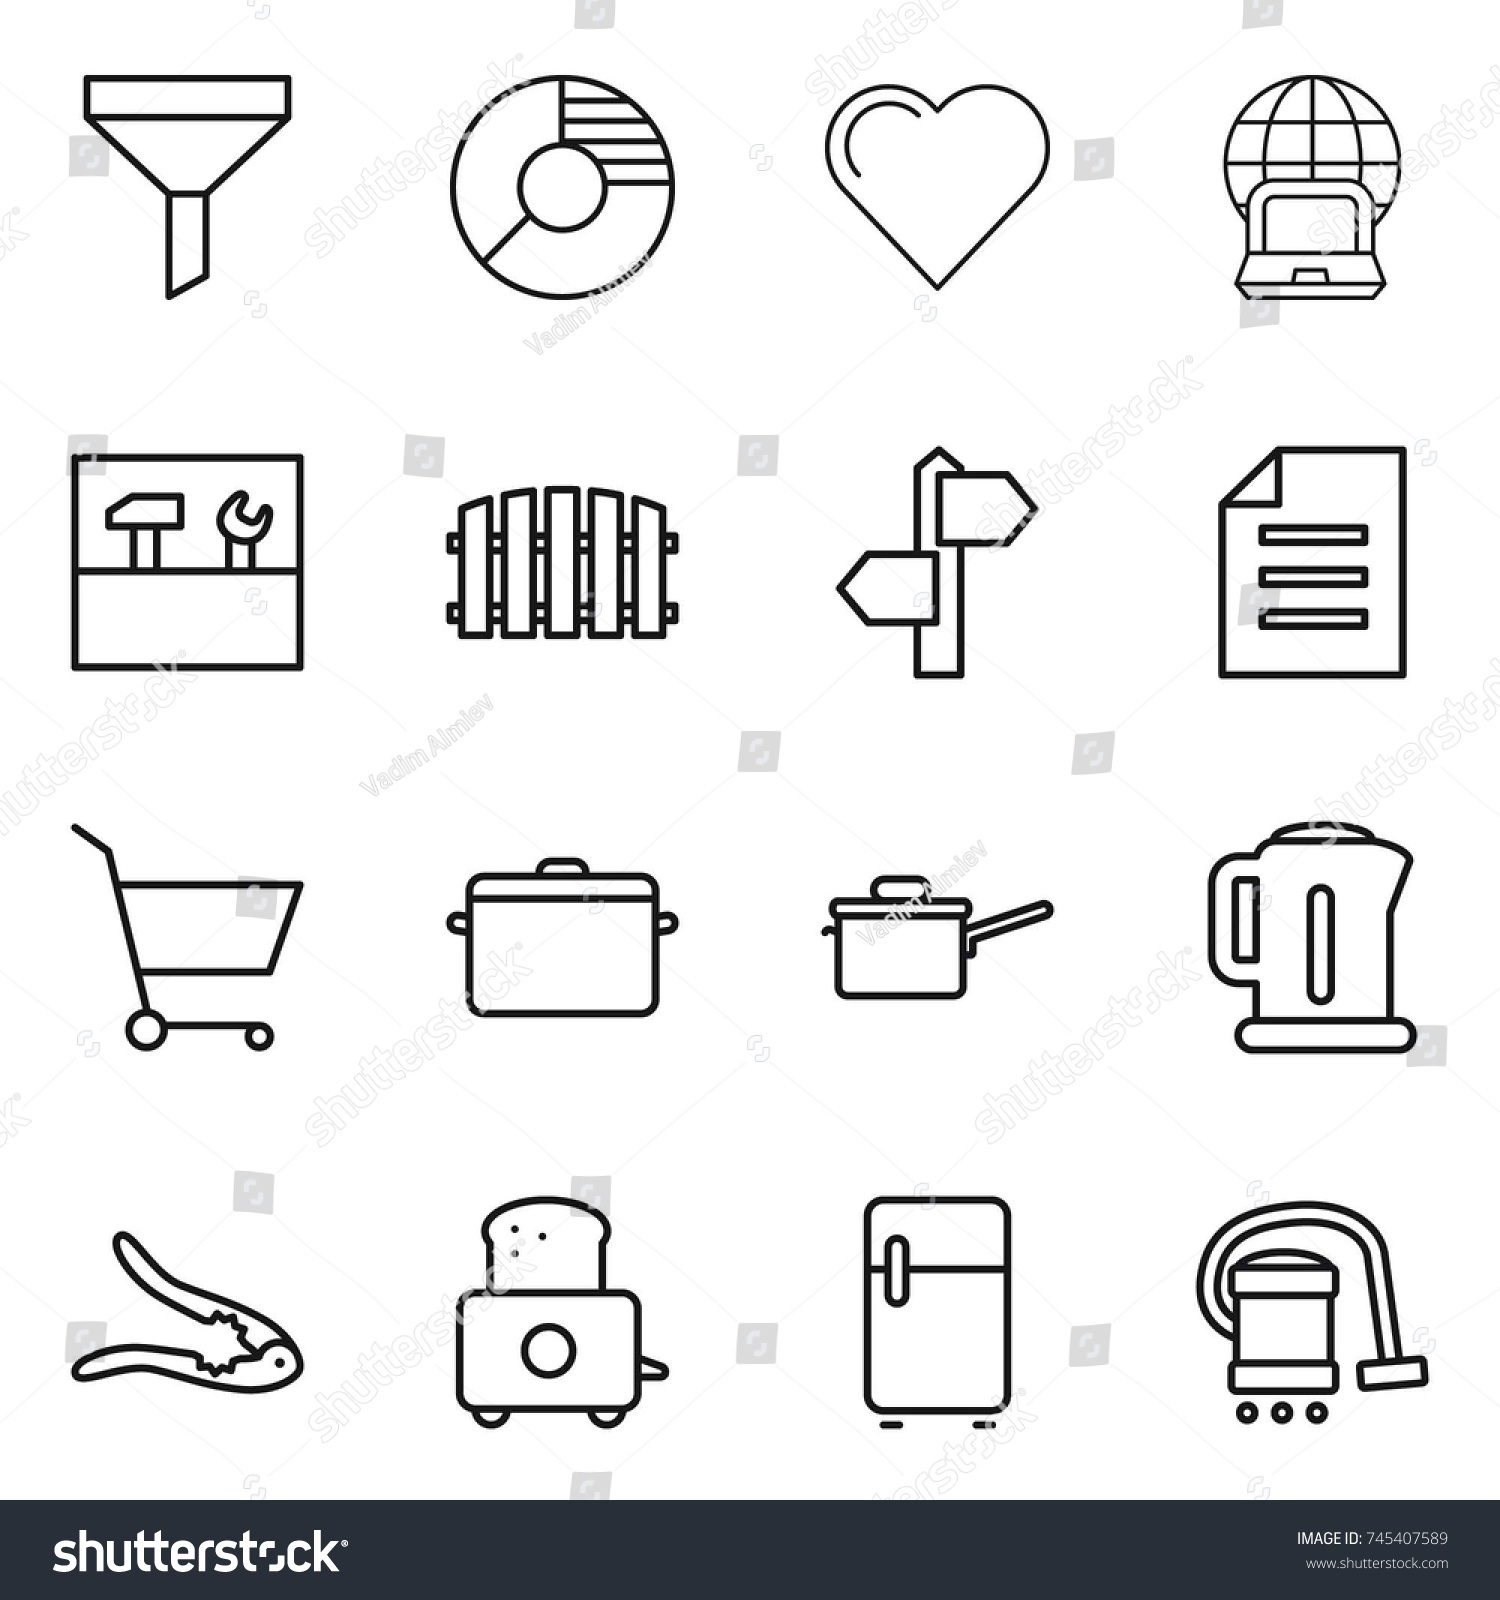 Thin line icon set funnel circle stock vector 745407589 shutterstock thin line icon set funnel circle diagram heart notebook globe tools ccuart Image collections